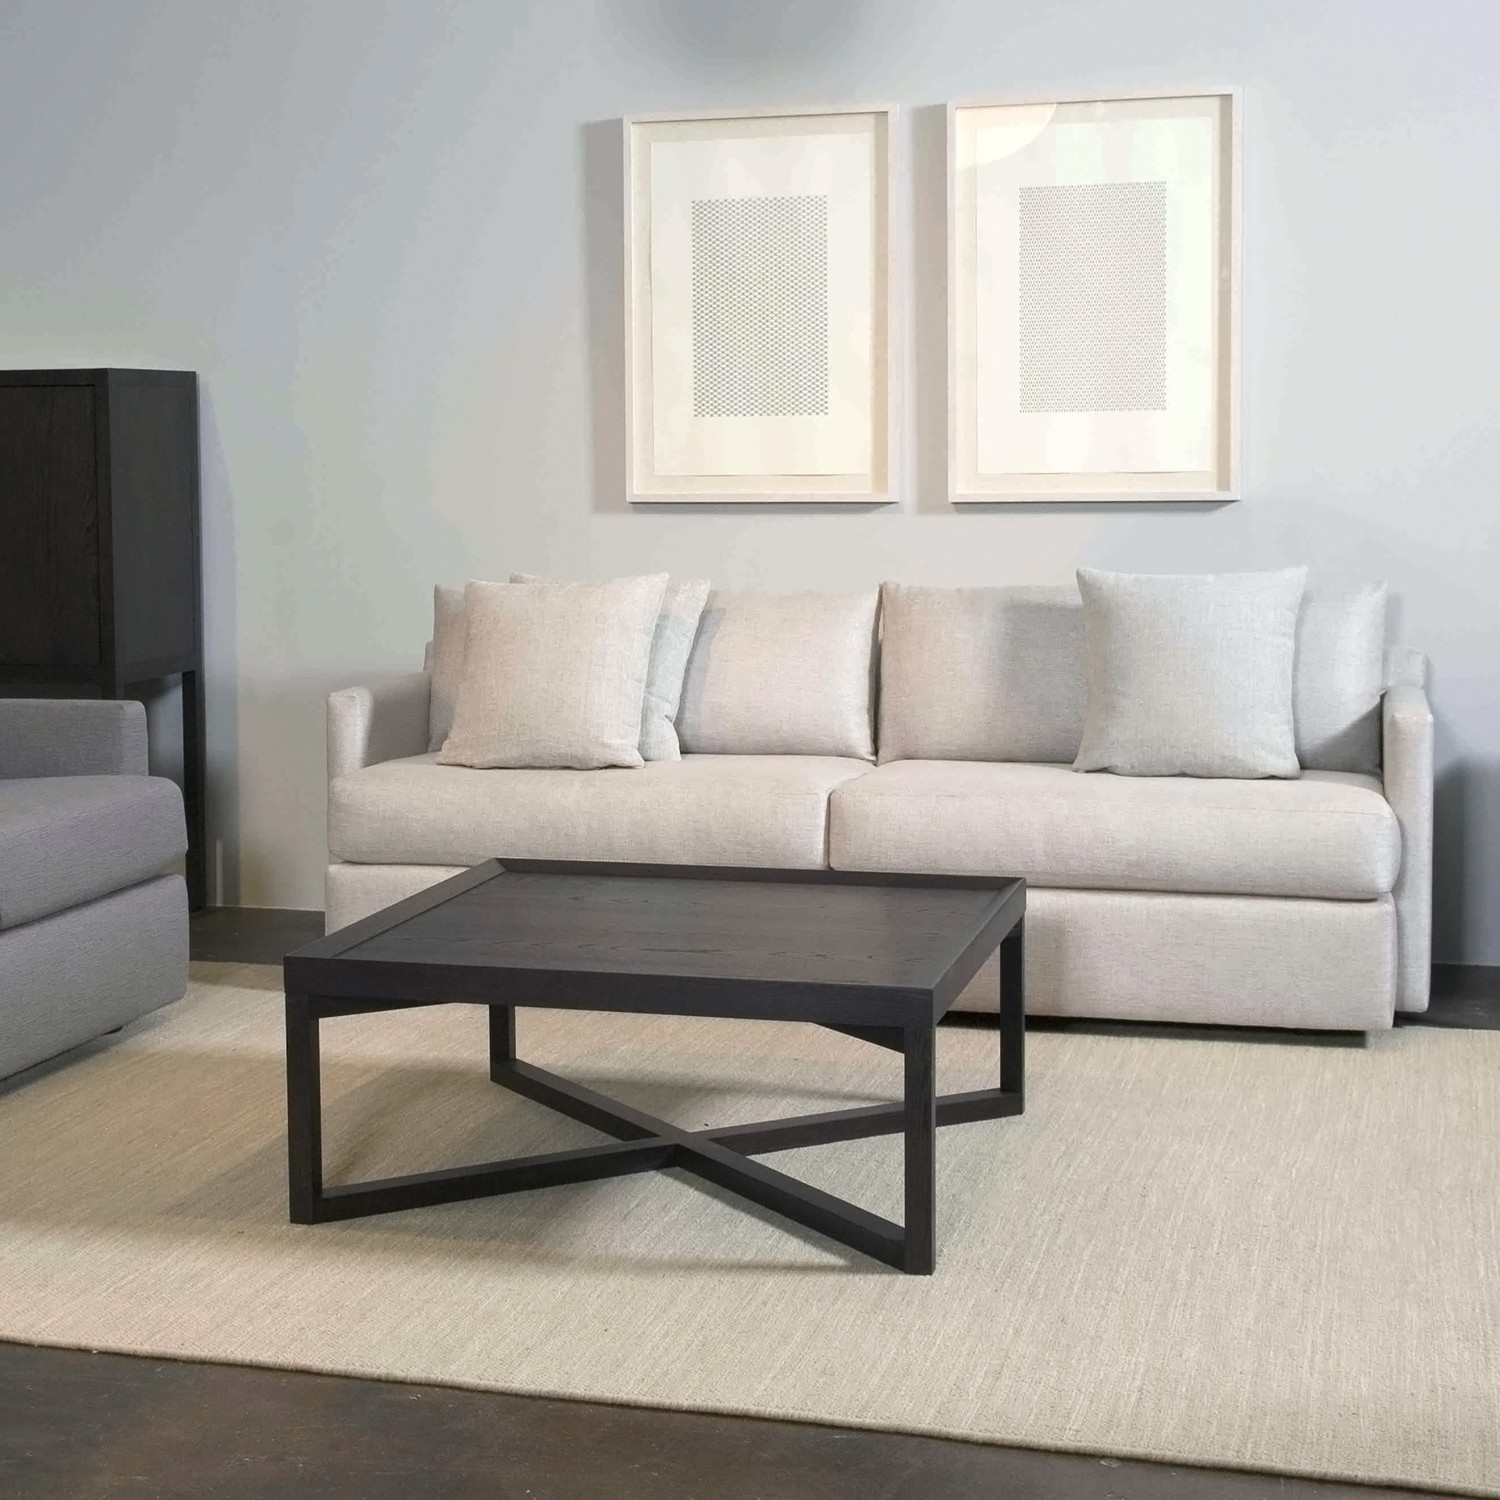 Cleave Coffee Table - Calvin Klein Home Touch Of Modern